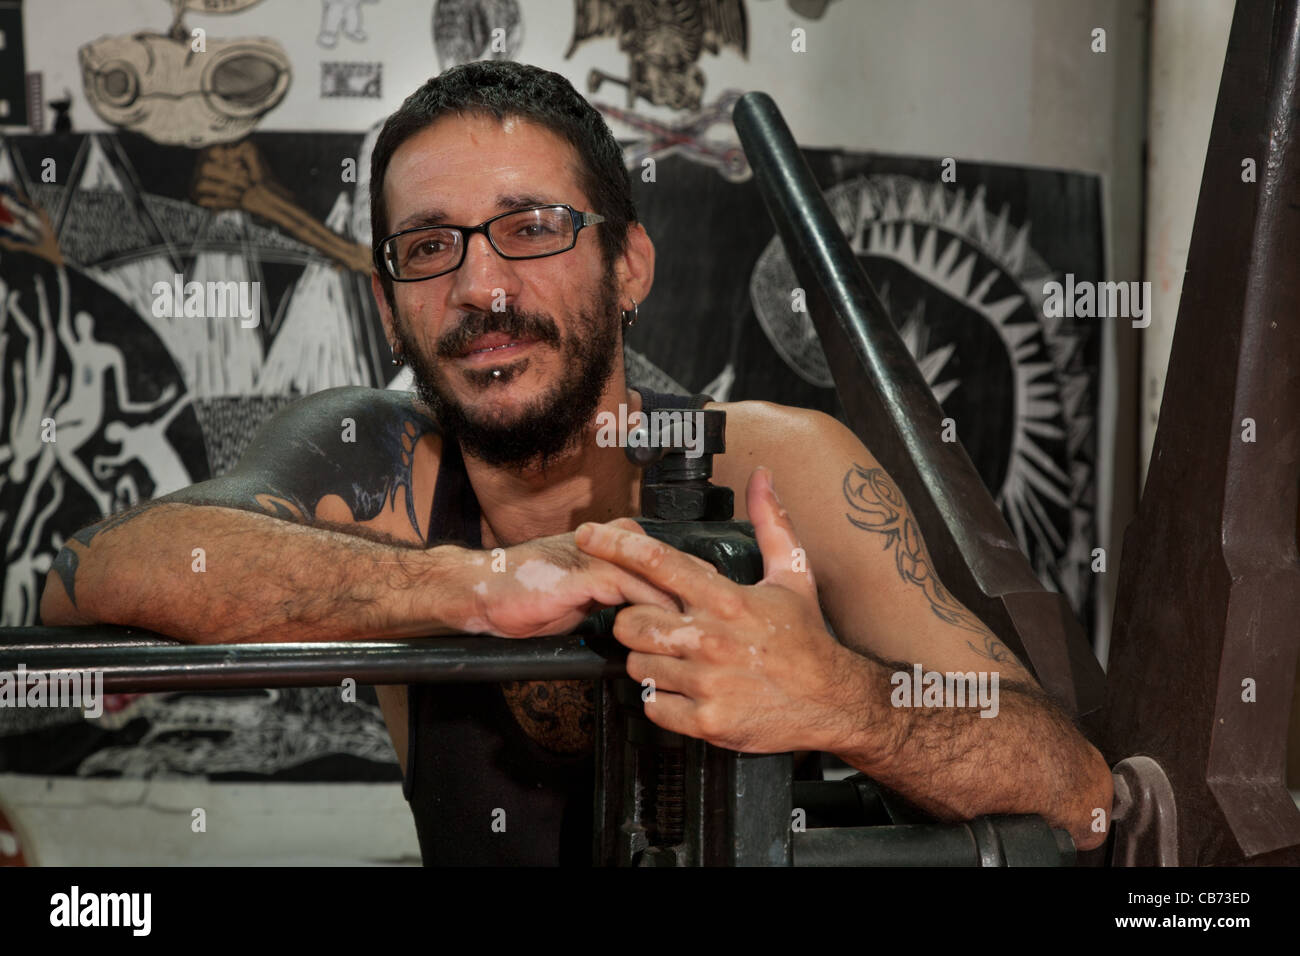 Daniel, an engraver at the National Porto Carrero Engraving School workshop, Havana (La Habana), Cuba - Stock Image